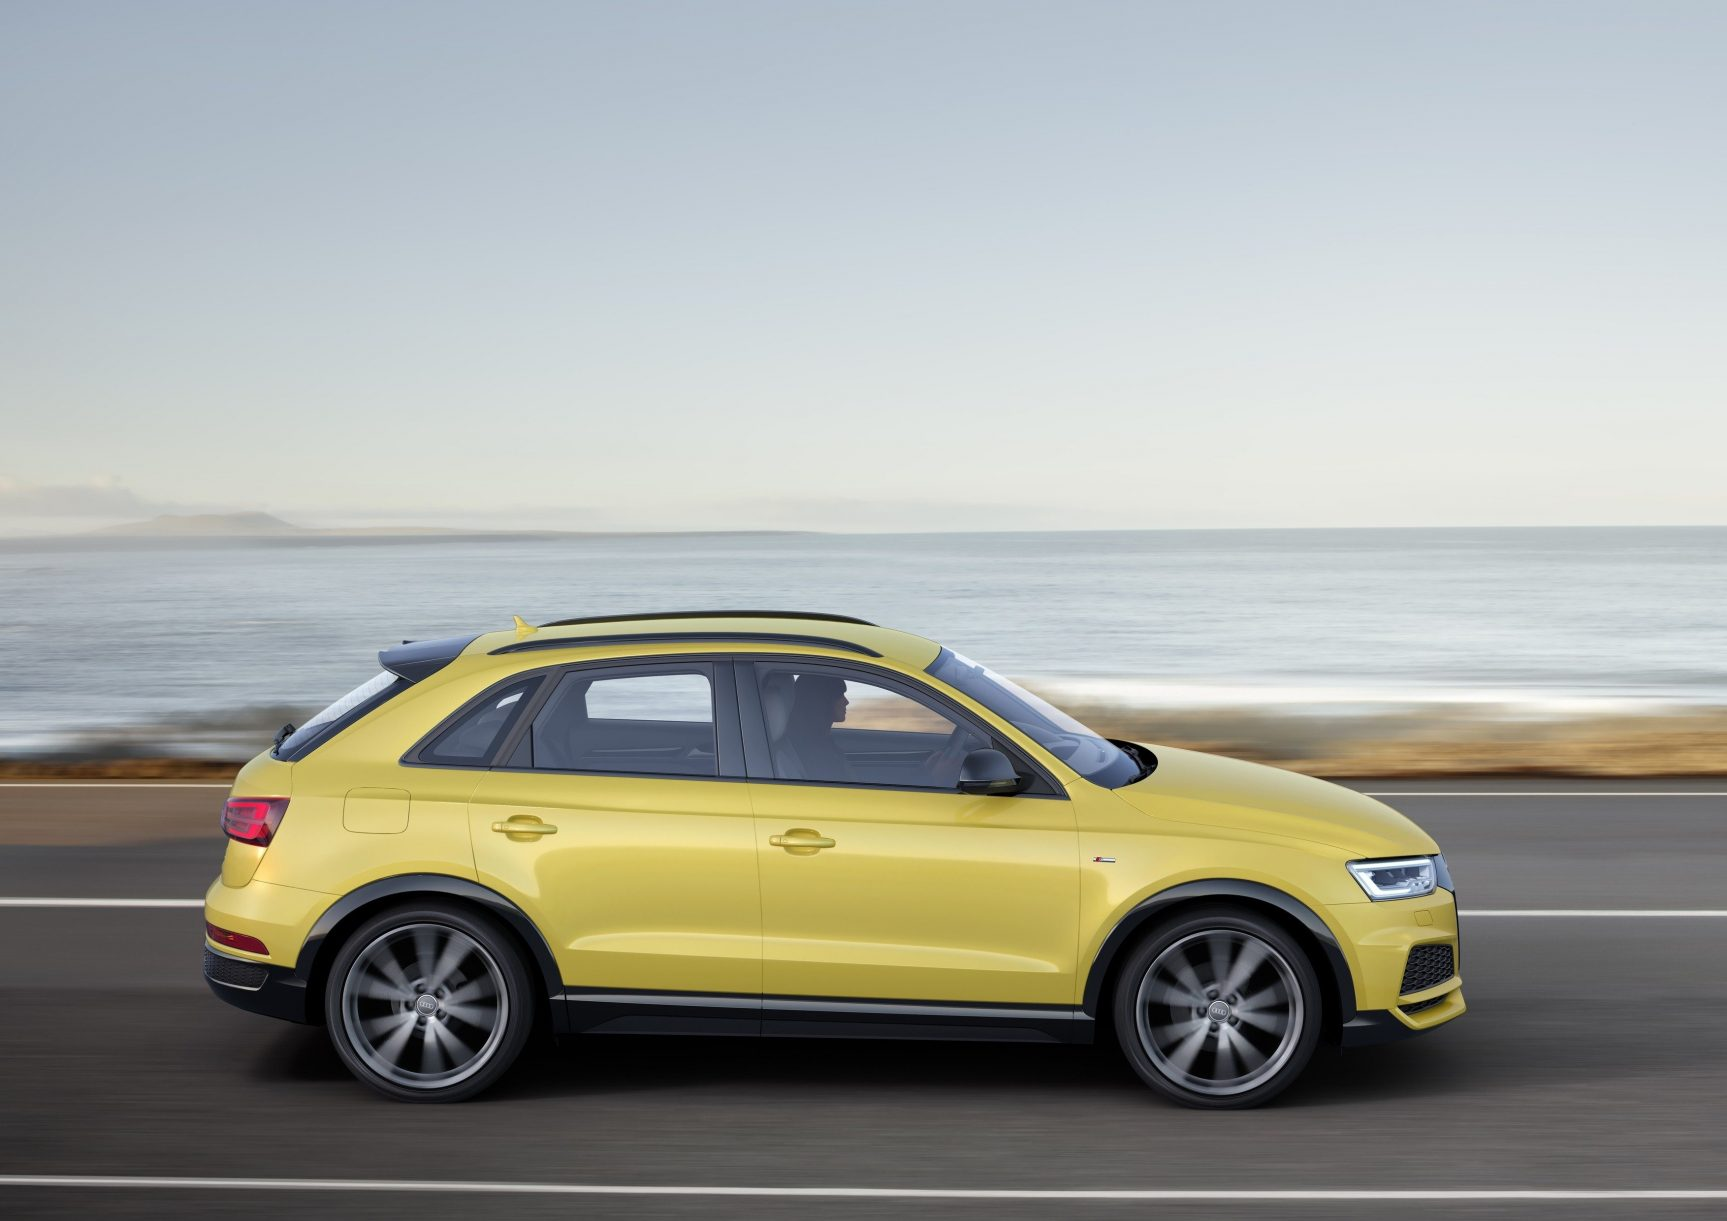 2019 Audi Q3 Review, Engine, Release Date, Exterior, Price, Redesign